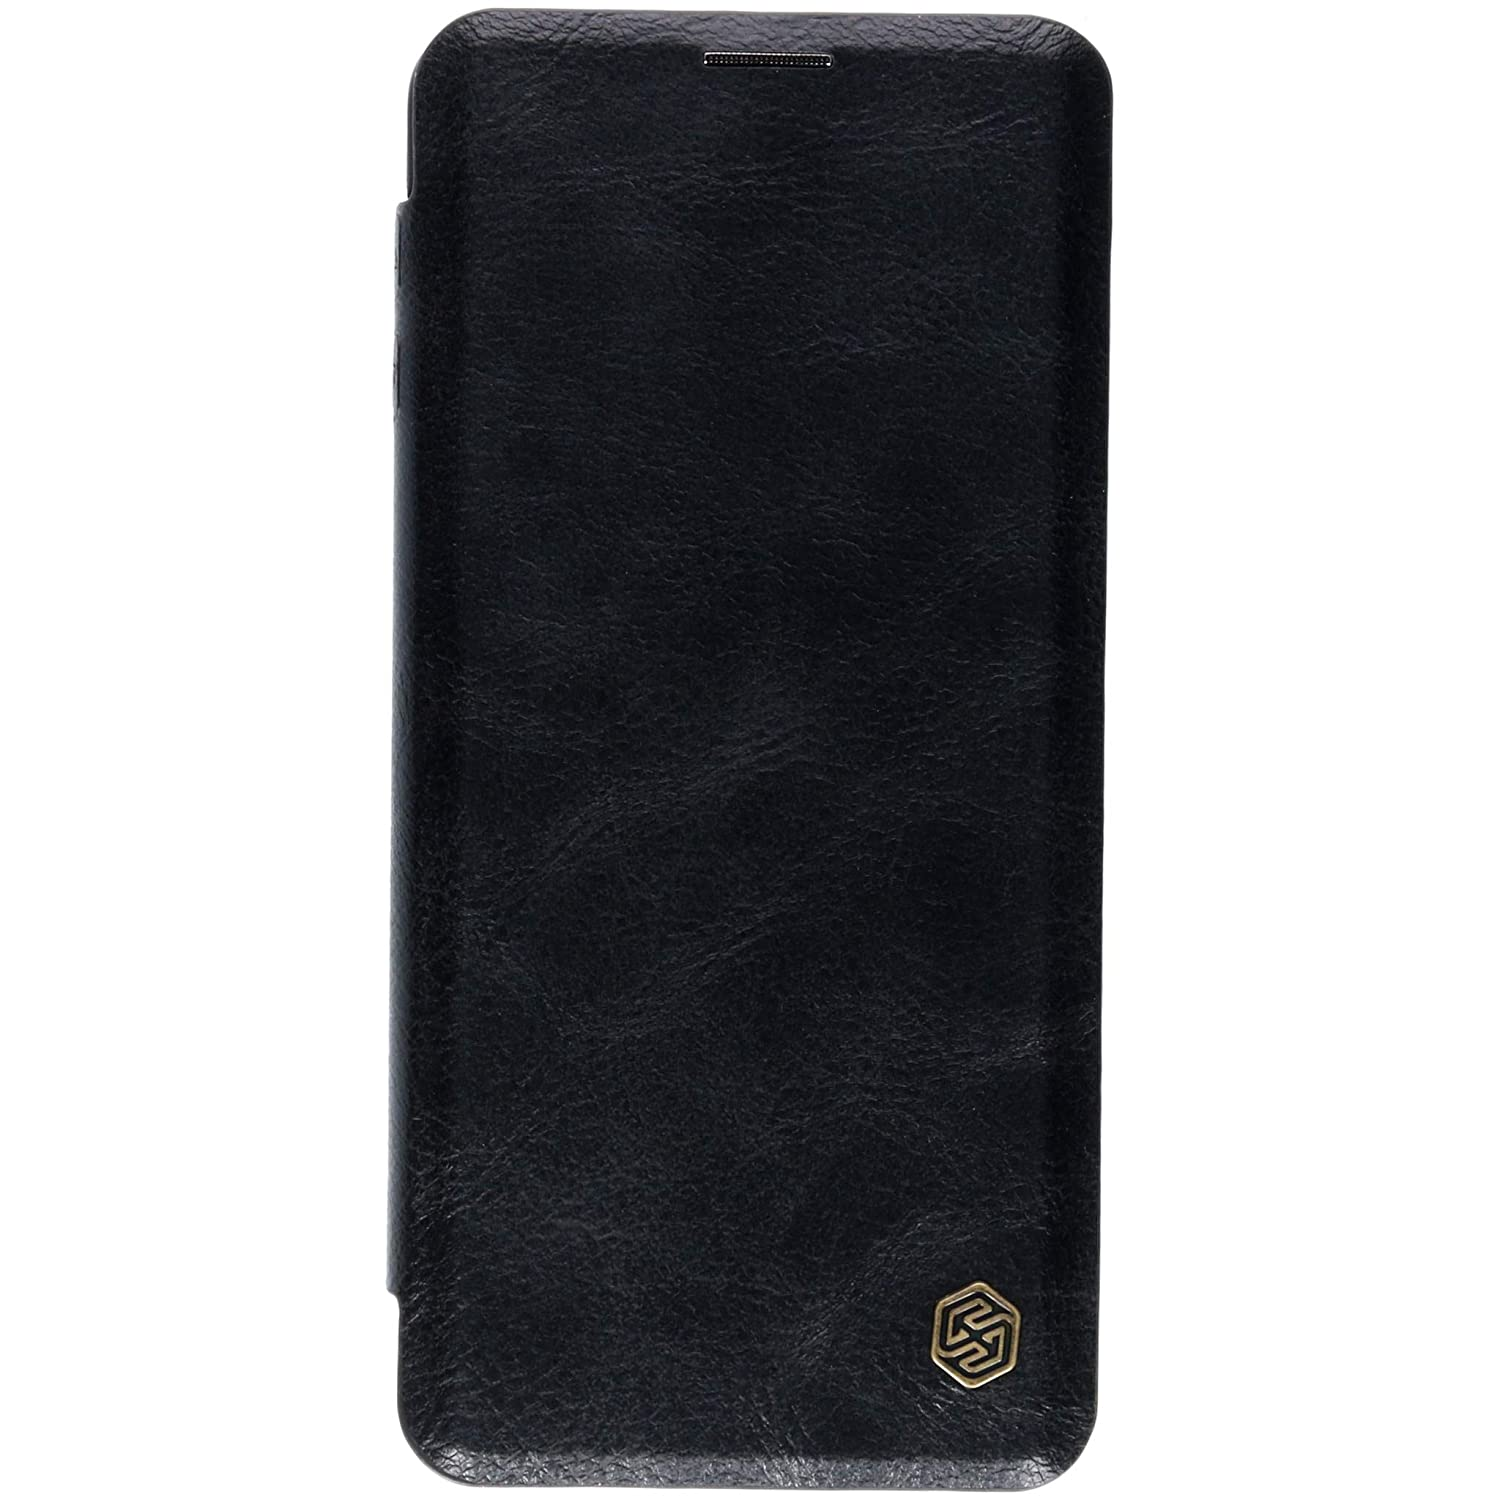 best service 2f3c2 d757d Nillkin Qin Series Royal Leather Flip Case Cover for Samsung Galaxy S10  (Black)